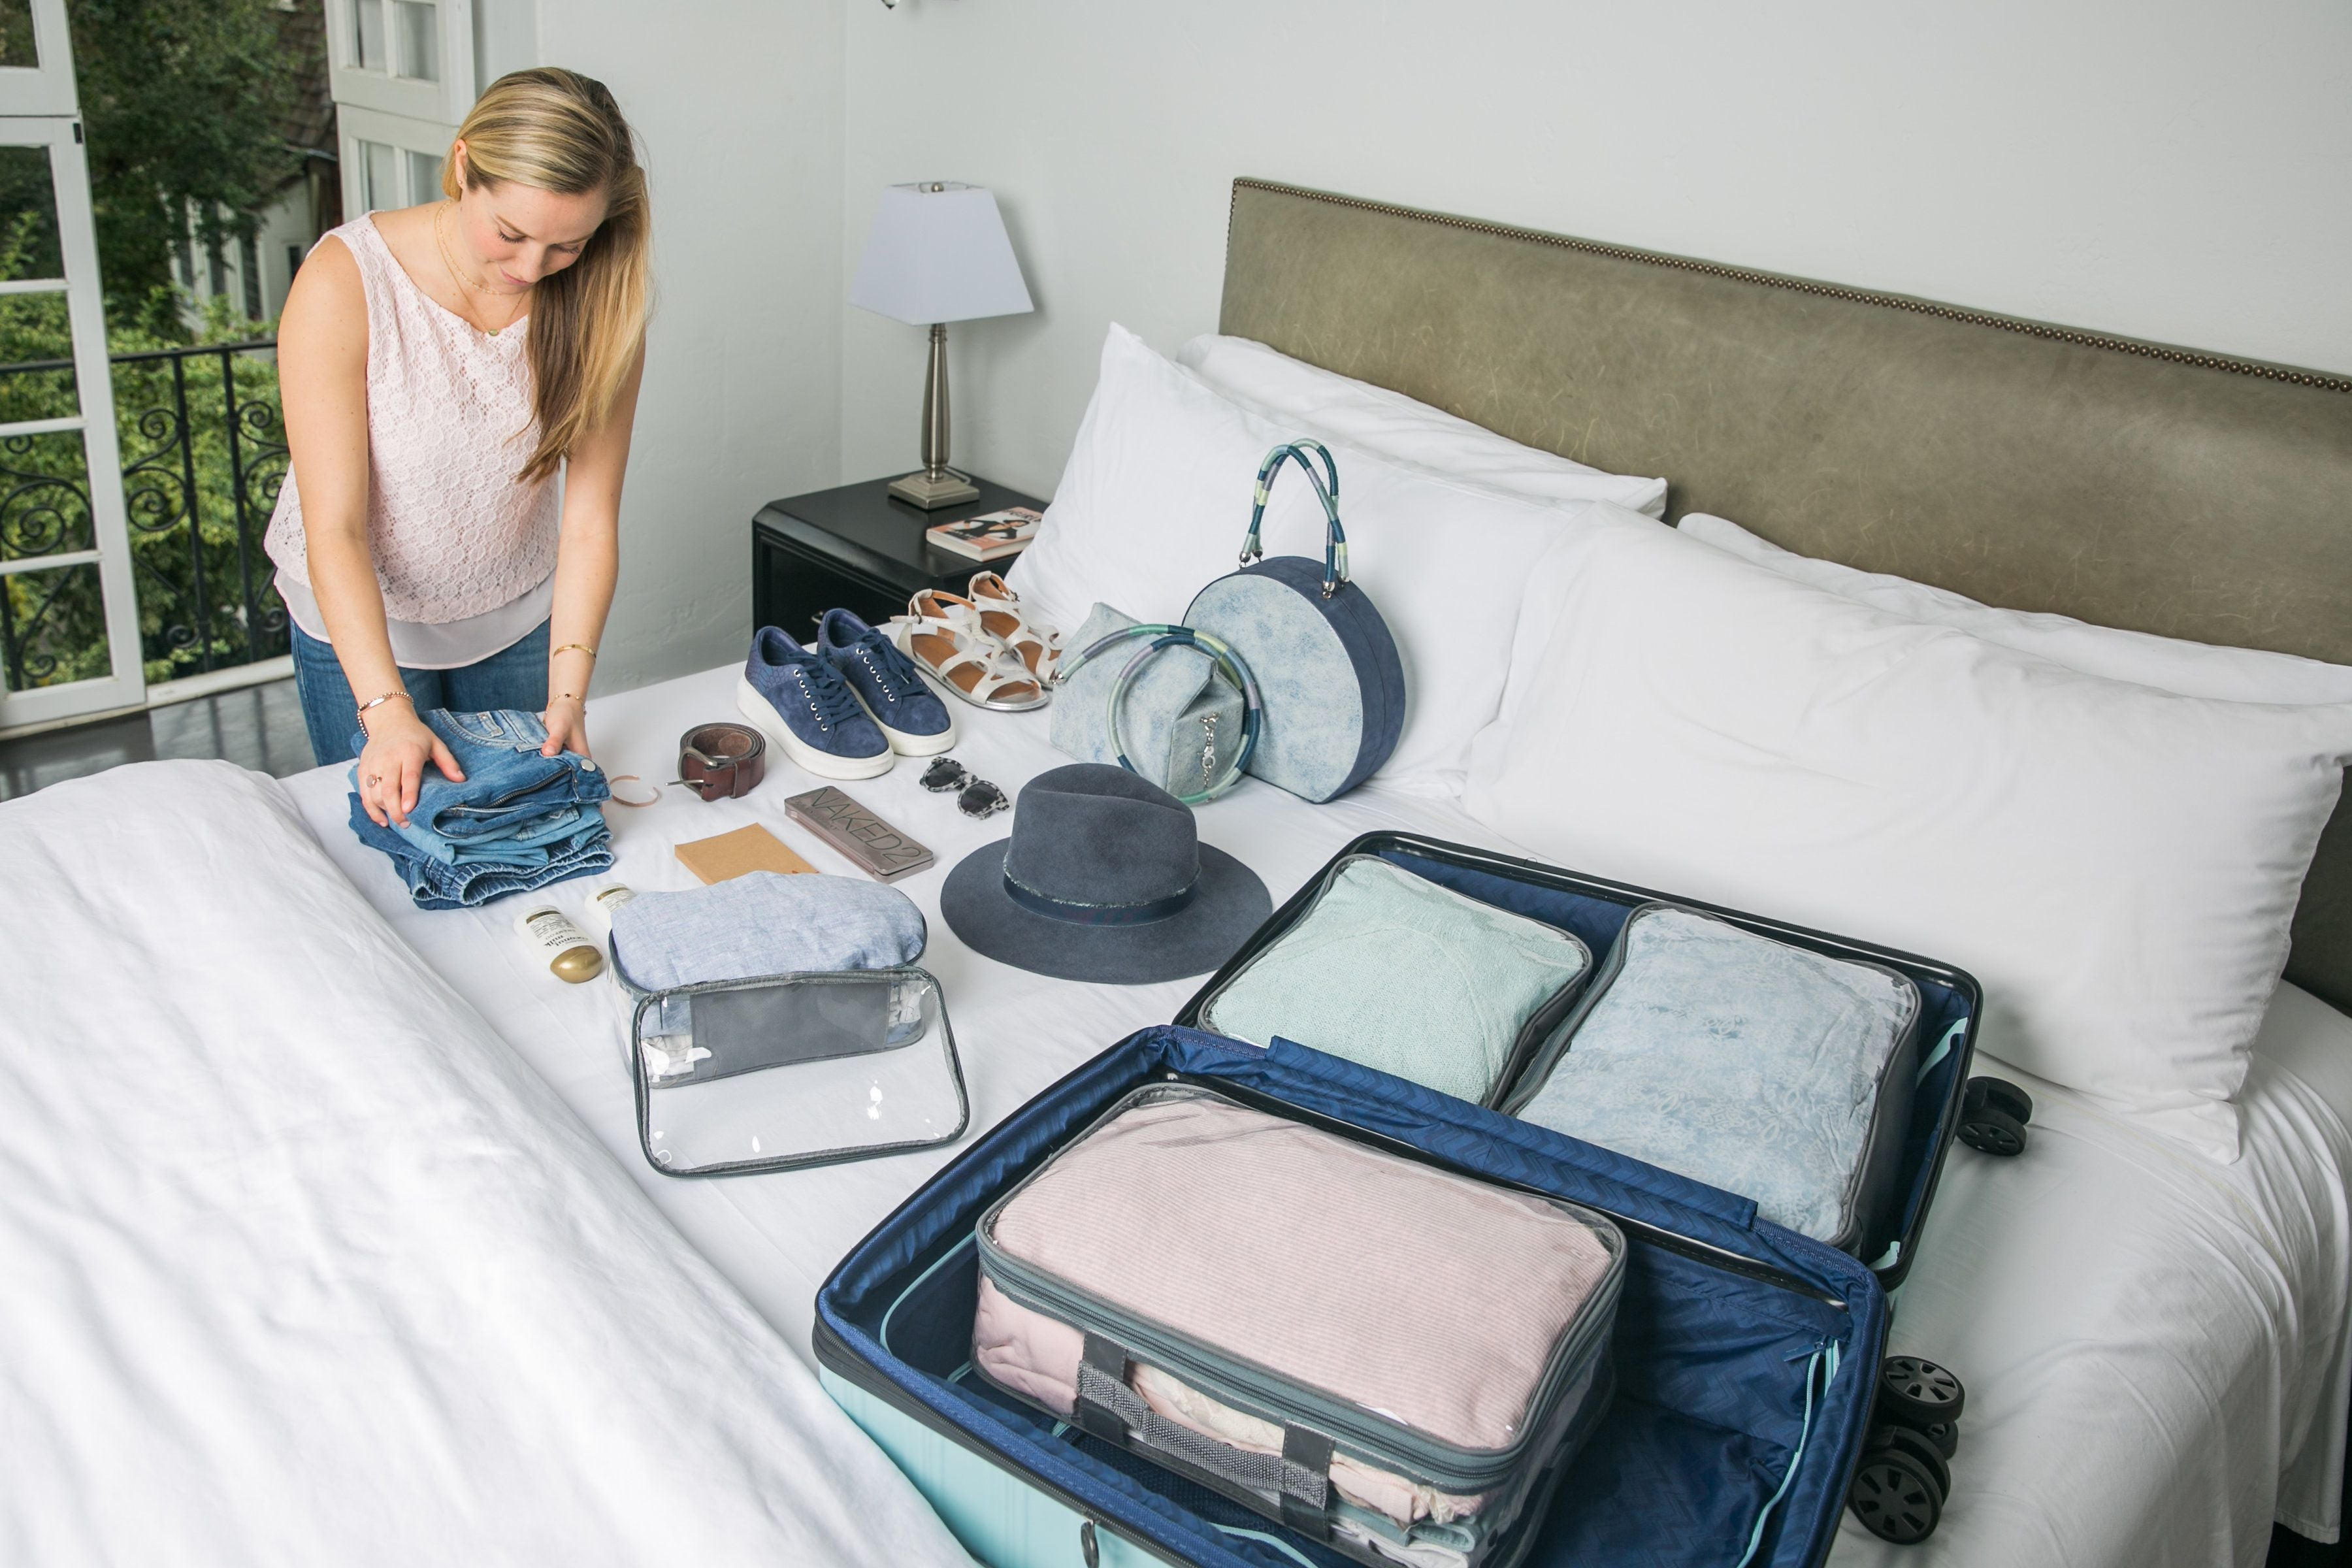 Lady packing a suitcase using clear cubes